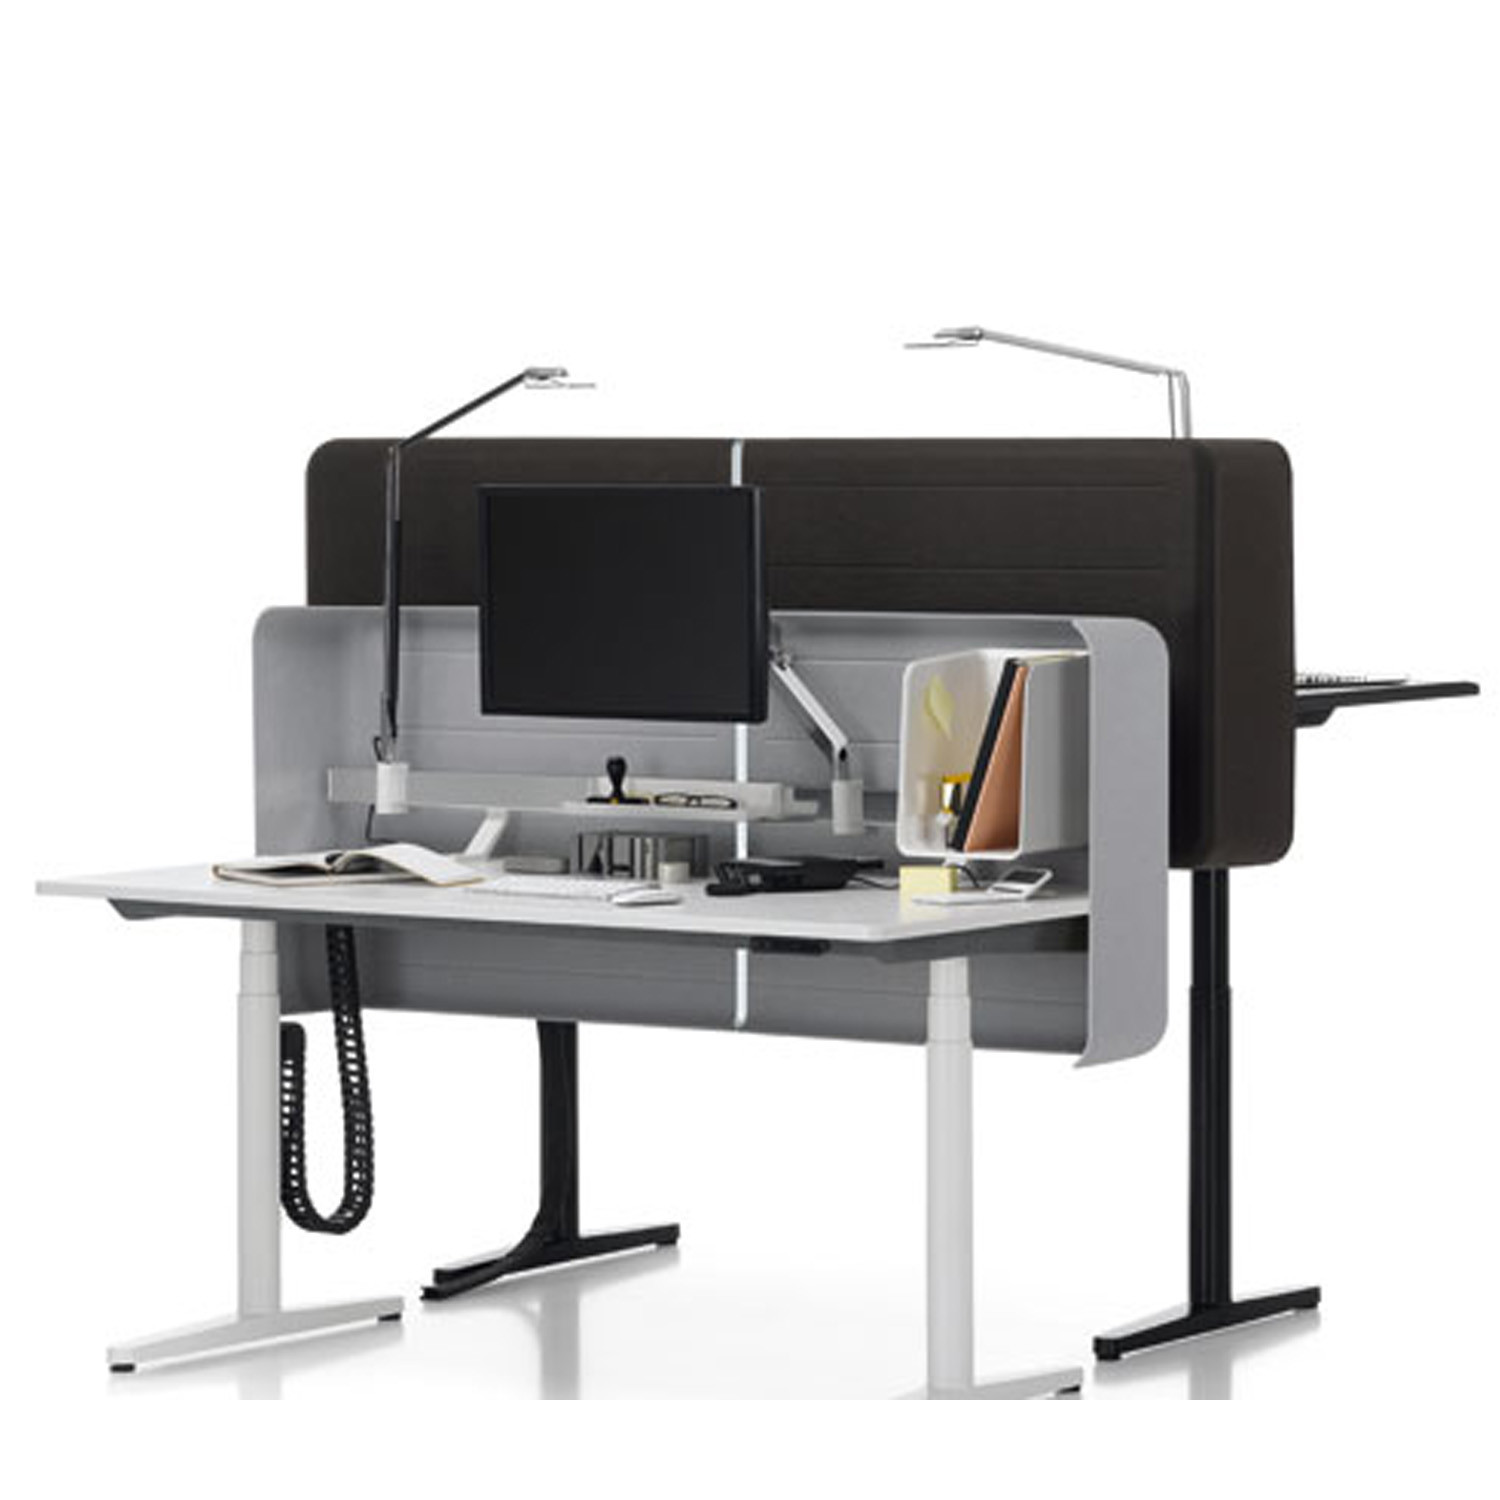 Vitra Tyde Table   Height Adjustable Sit-Stand Table   Apres Furniture - ... Vitra Tyde Sit-Stand Adjustable Desk ...